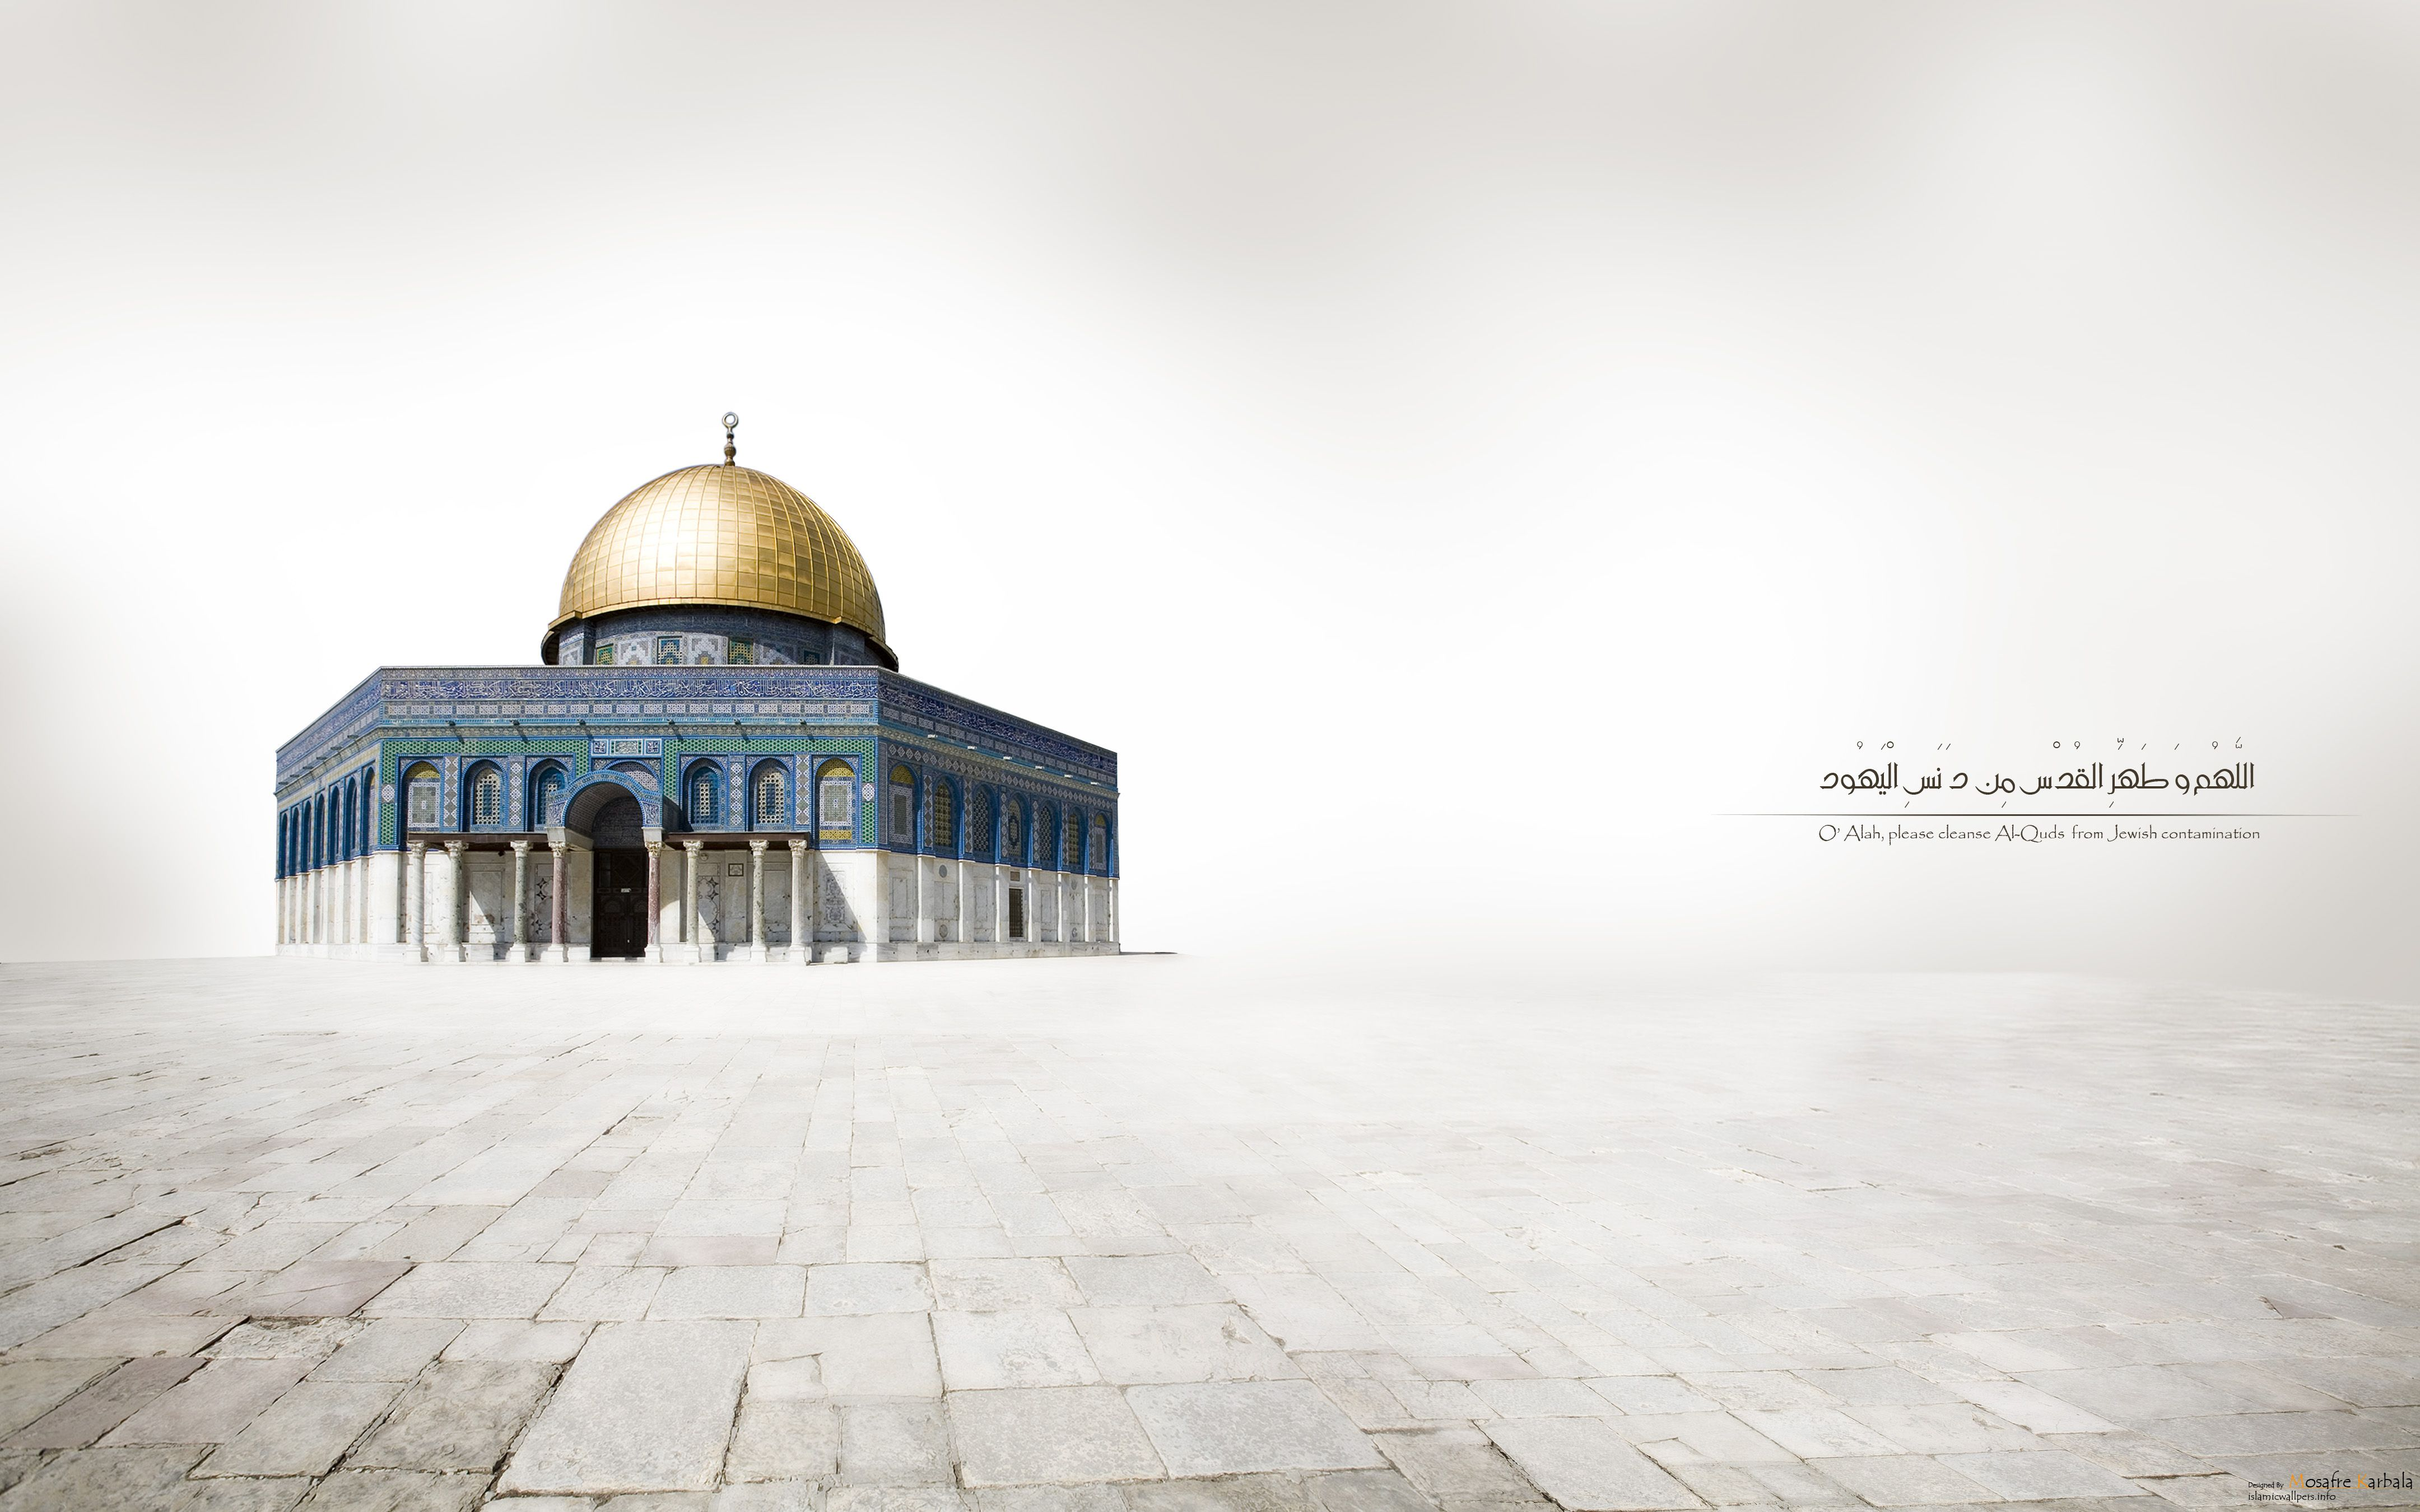 Islamic Wallpaper For Pc Free Download Hd Wallpapers Free Oboi